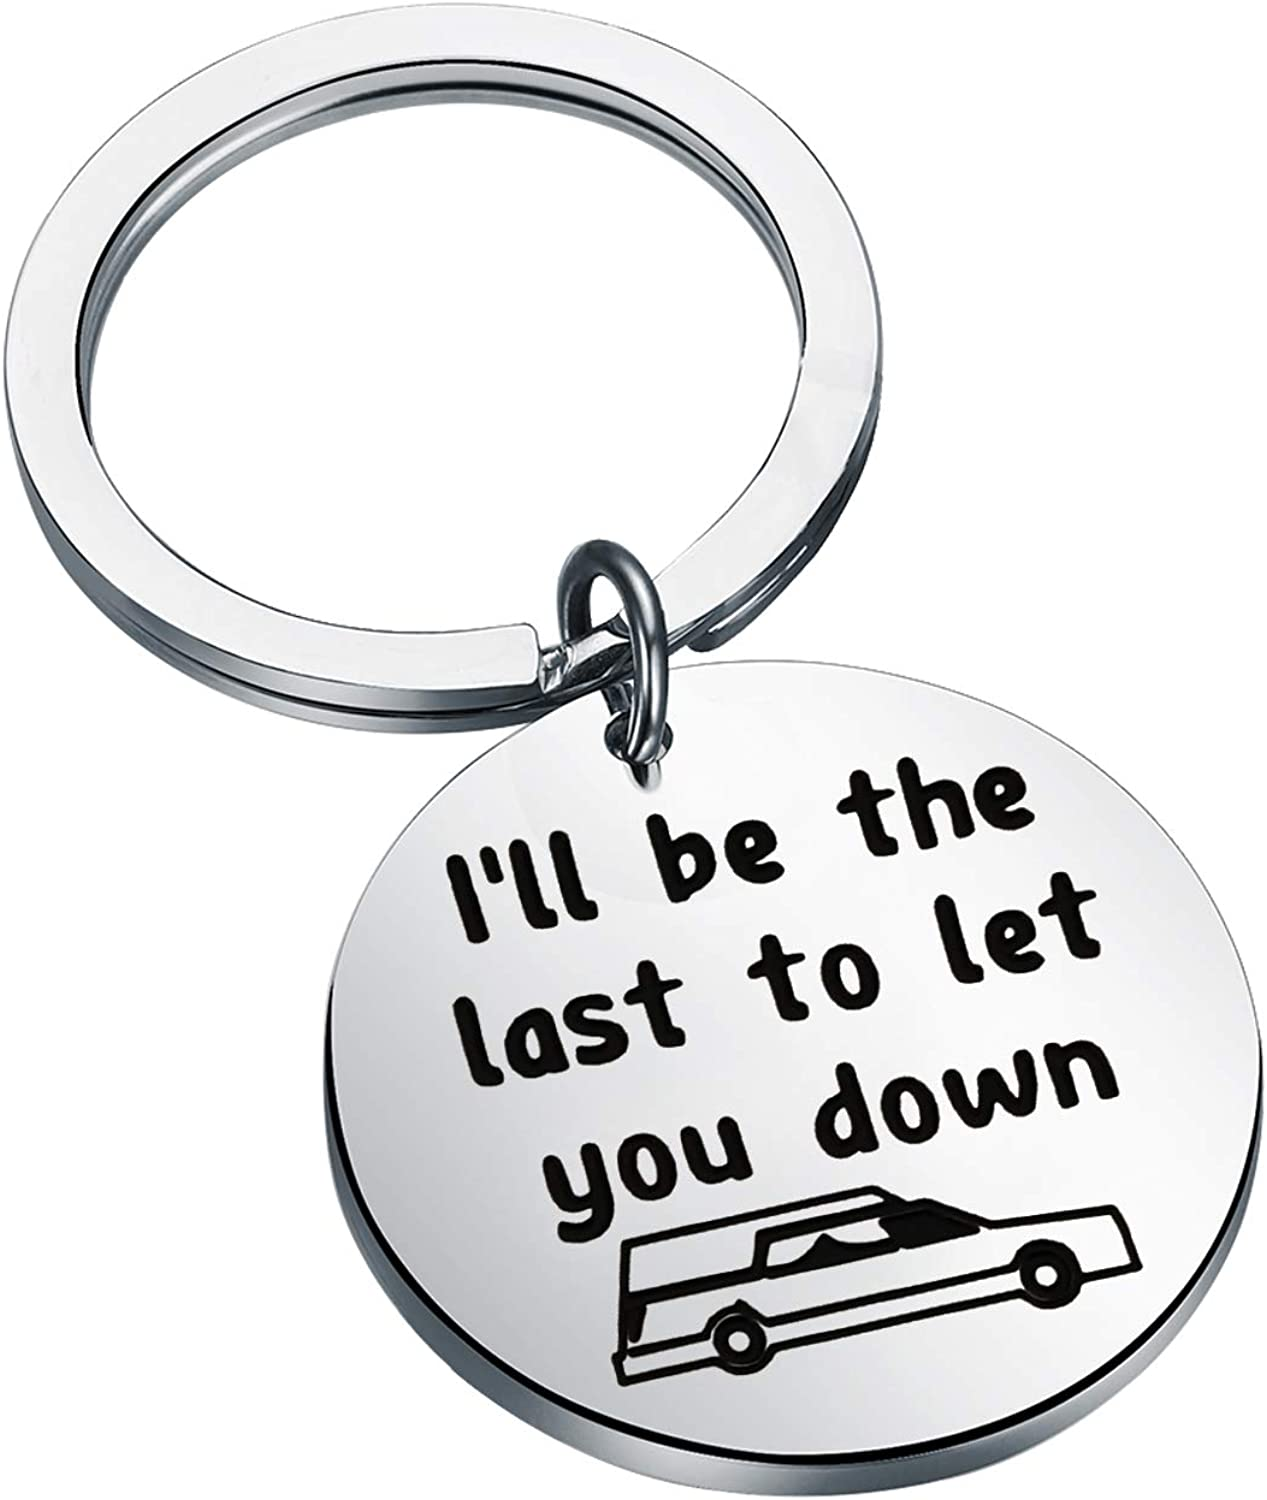 BAUNA Funeral Director Keychain I'll Be The Last to Let You Down Last Mortician Gift Dark Humor Jewelry Gift for Mortician Friend